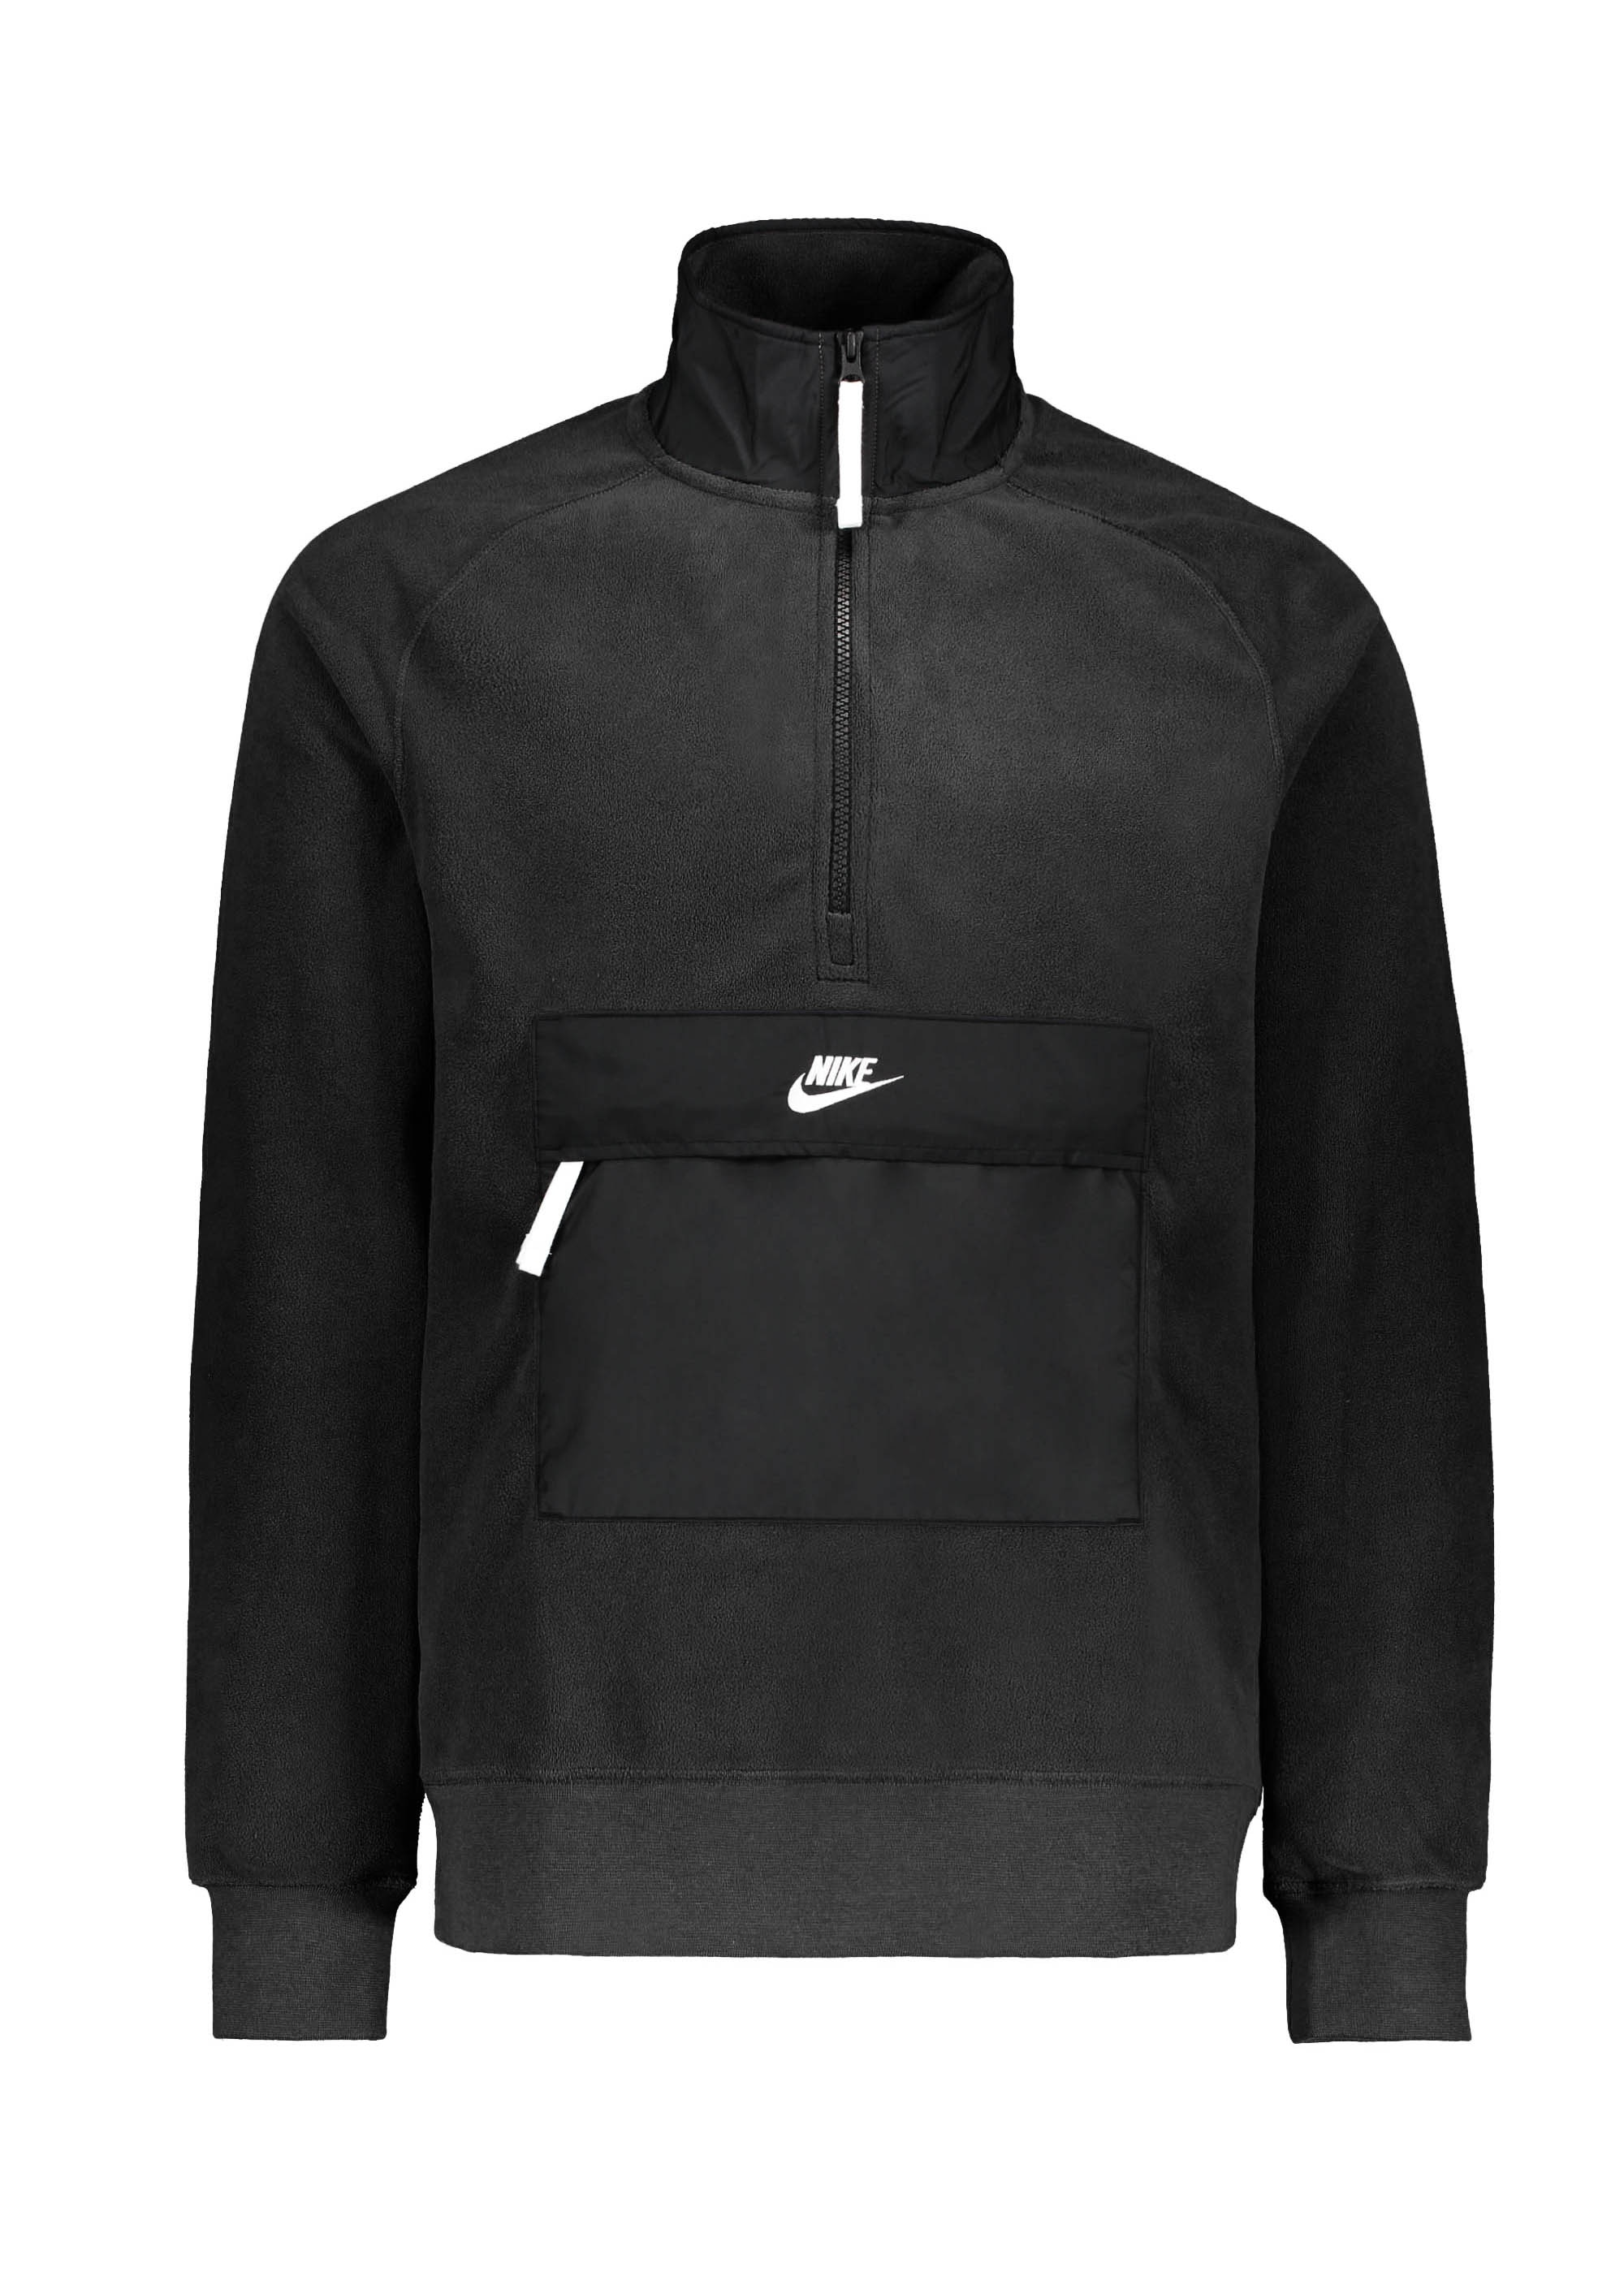 febea7b206f8 Nike Apparel NSW Top HZ - Core Black - Track Tops from Triads UK